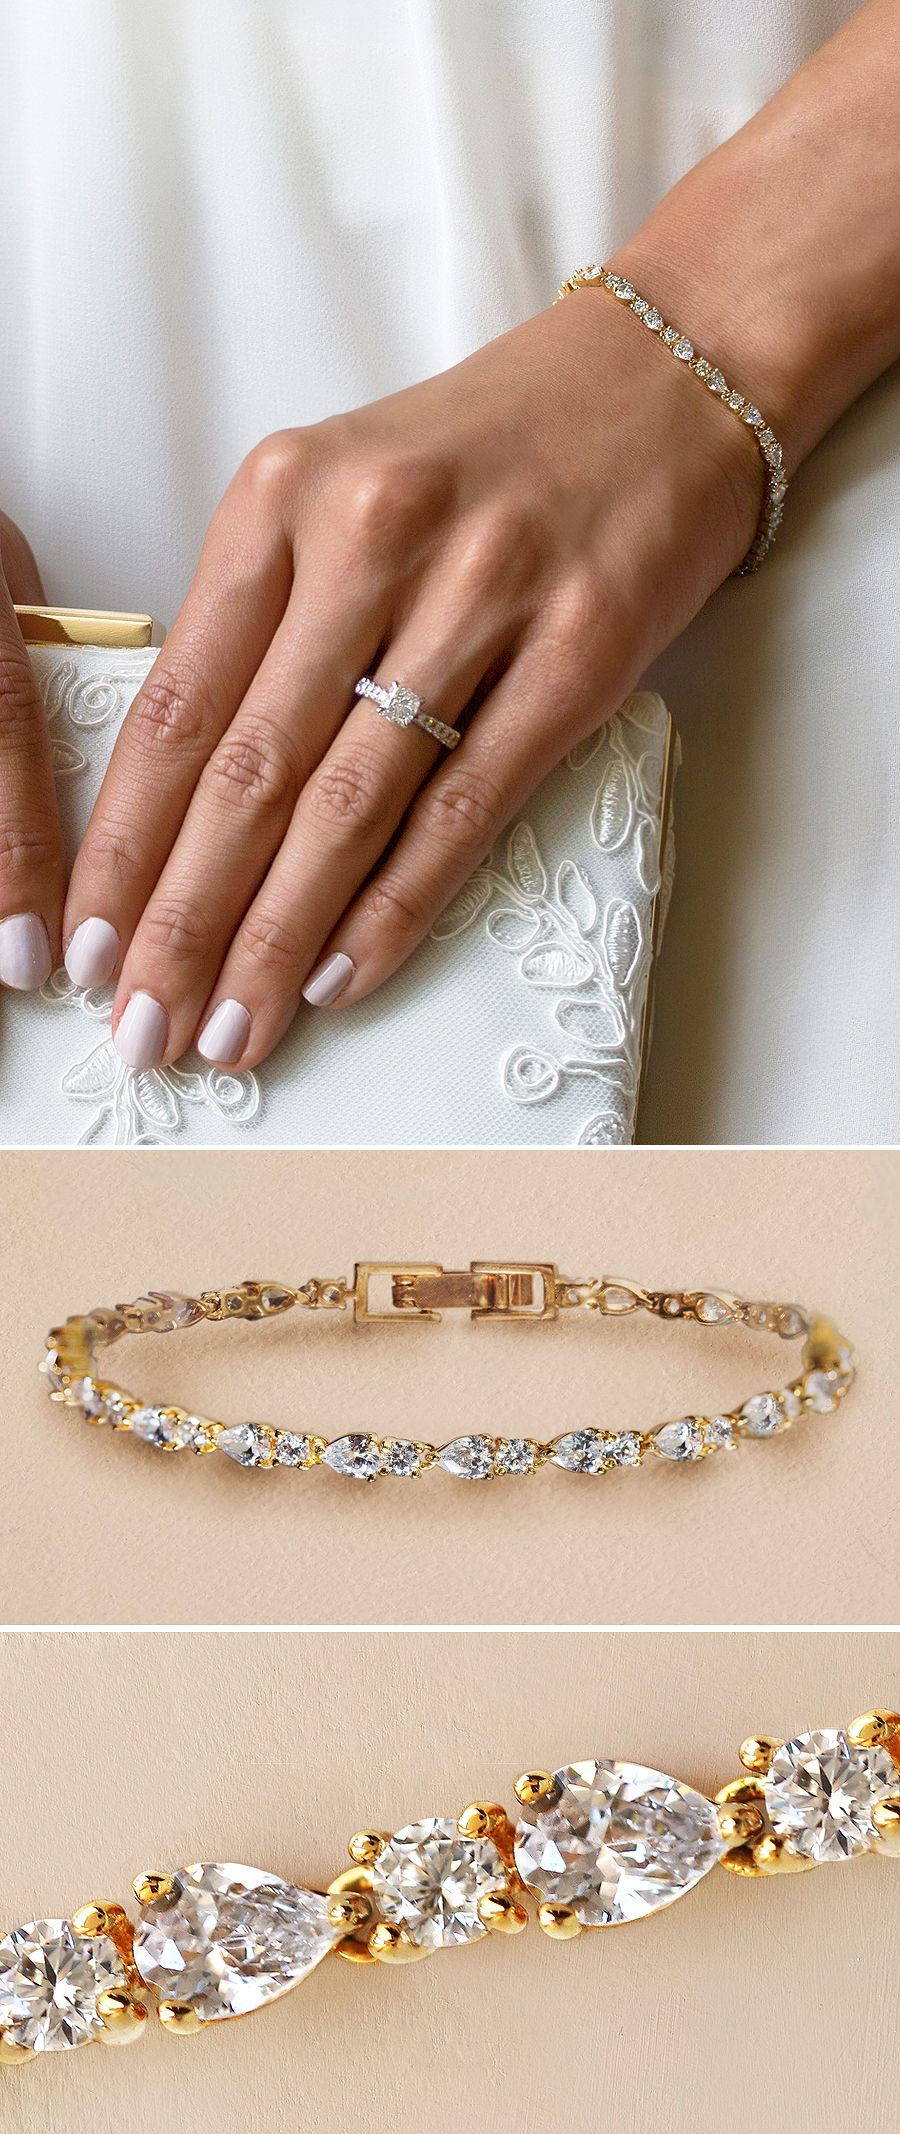 Wedding accessories with their own hands